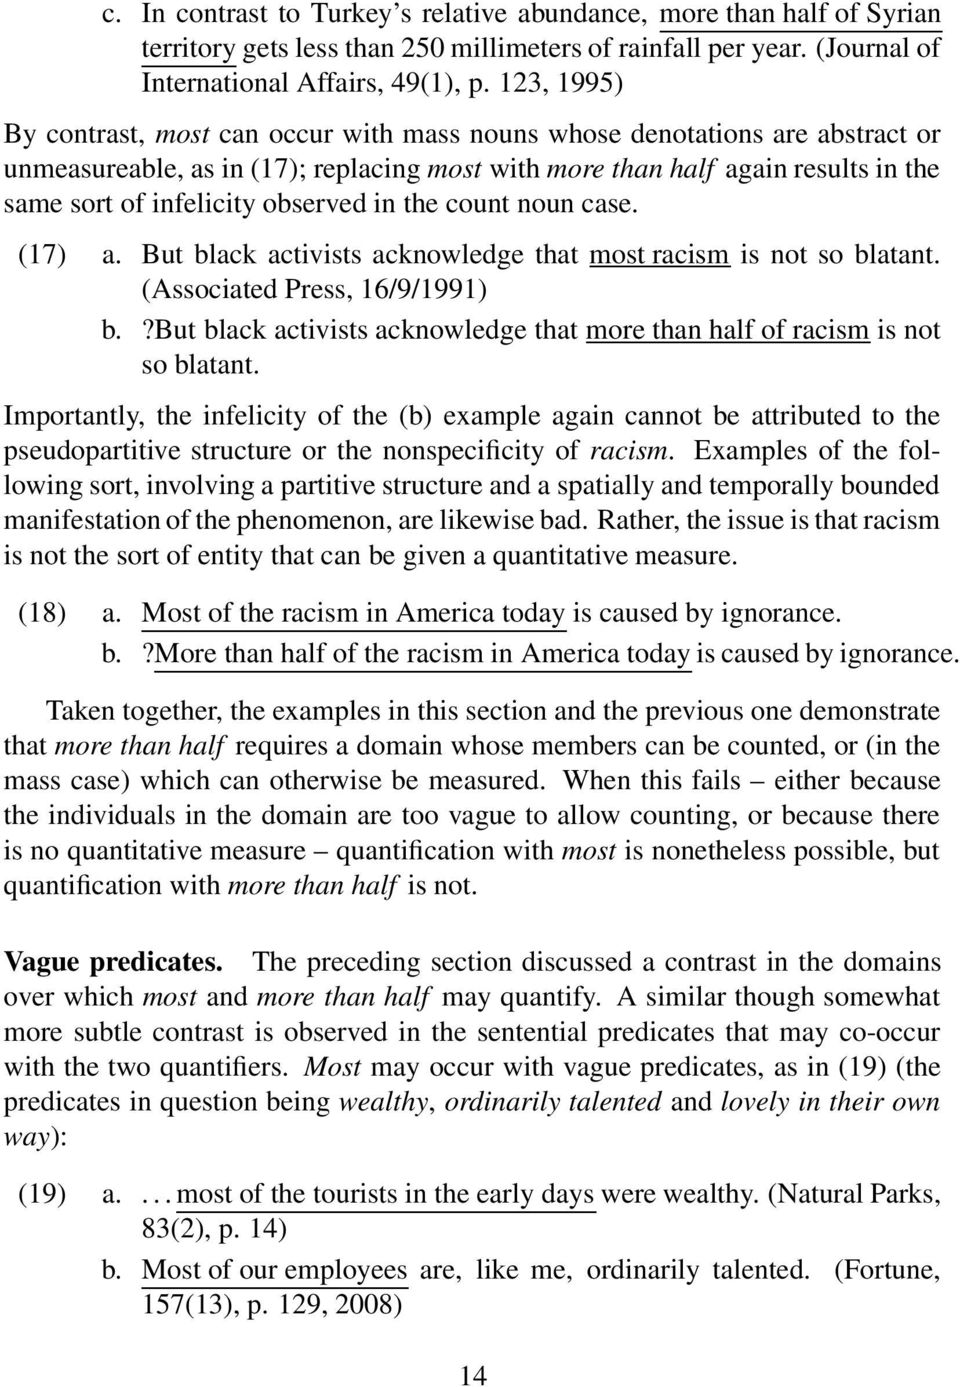 observed in the count noun case. (17) a. But black activists acknowledge that most racism is not so blatant. (Associated Press, 16/9/1991) b.